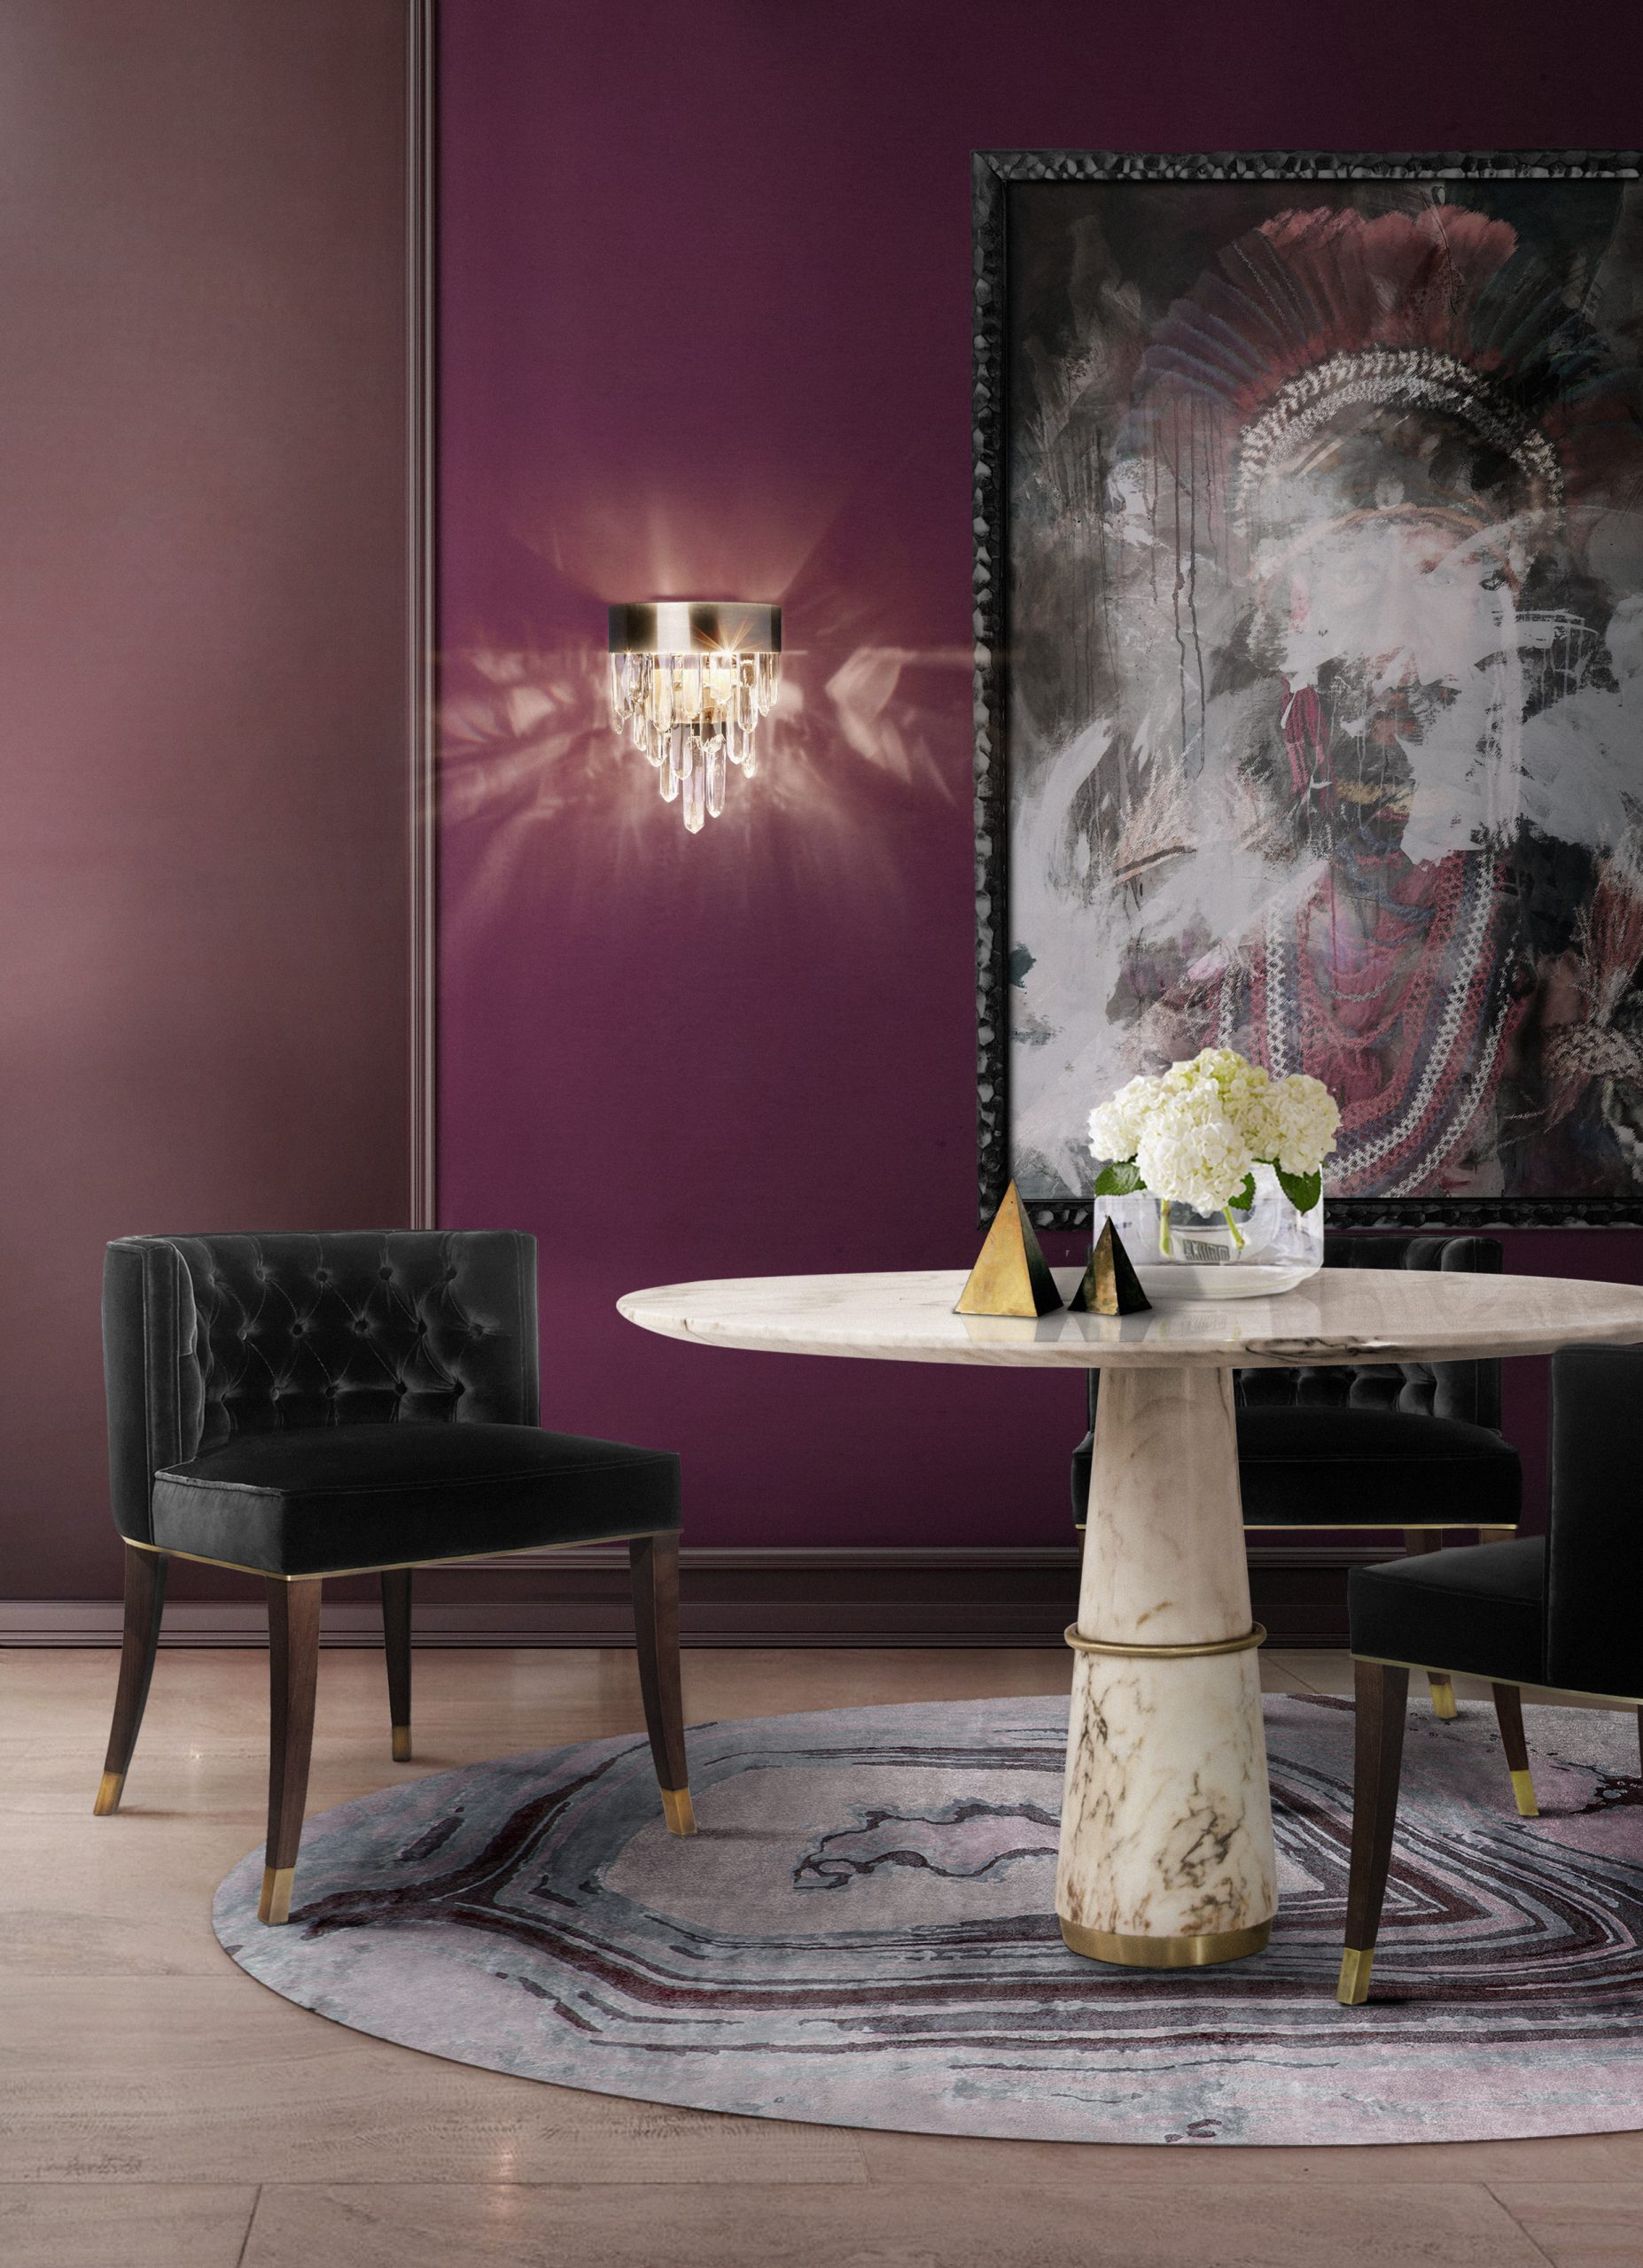 20 Dining Chairs You Will Need For A Modern Dining Room dining chairs 20 Dining Chairs You Will Need For A Modern Dining Room Agra Dining Bourbon Dining Naicca wall scaled